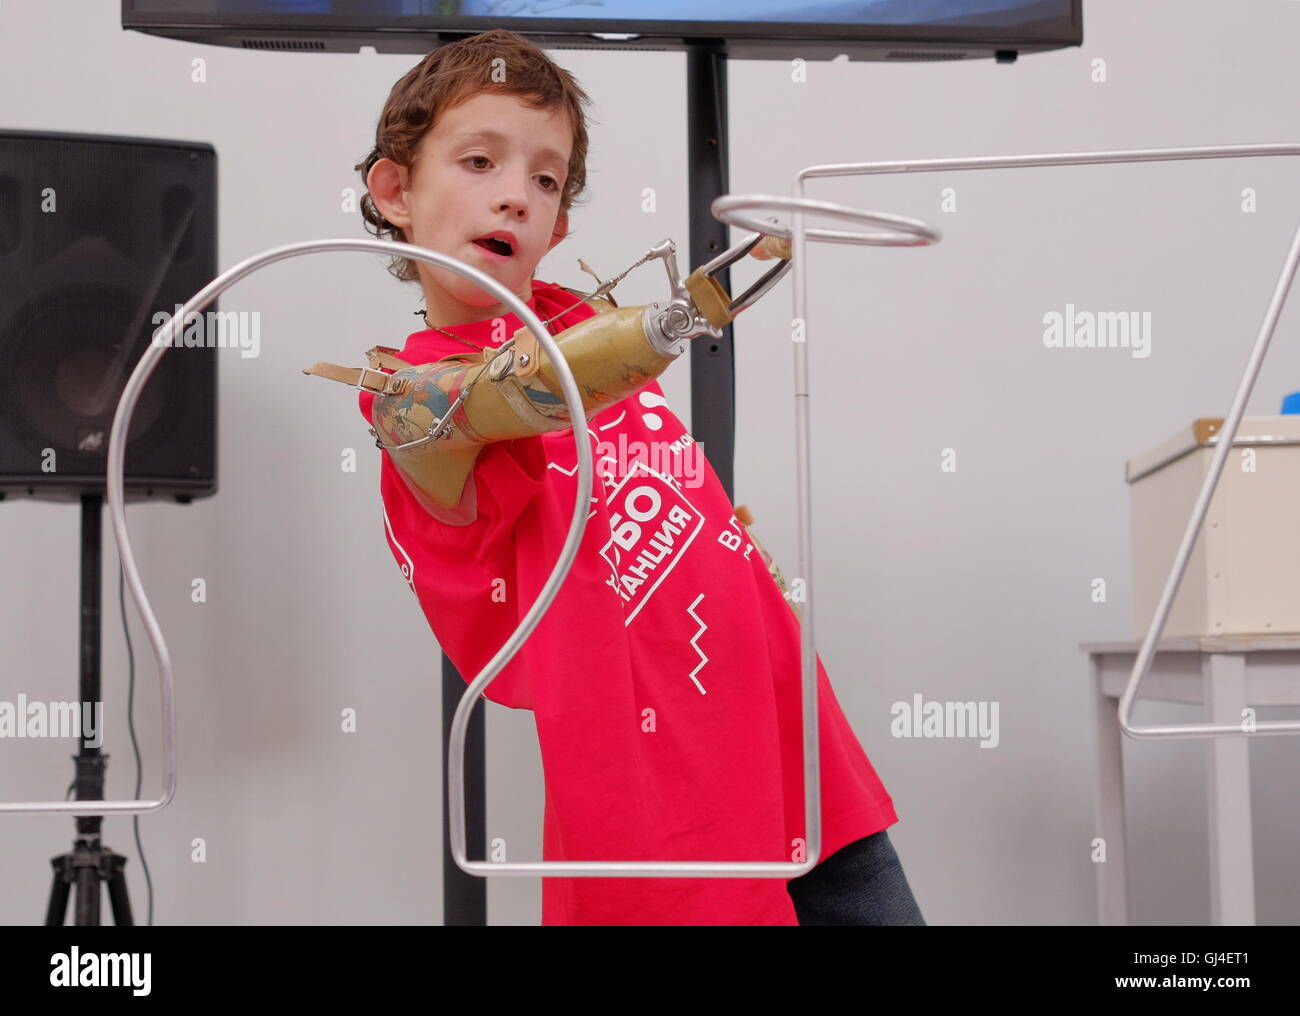 prosthetic limb child stock photos \u0026 prosthetic limb child stockmoscow, russia 13th aug, 2016 a participant in the cybathlon competition for